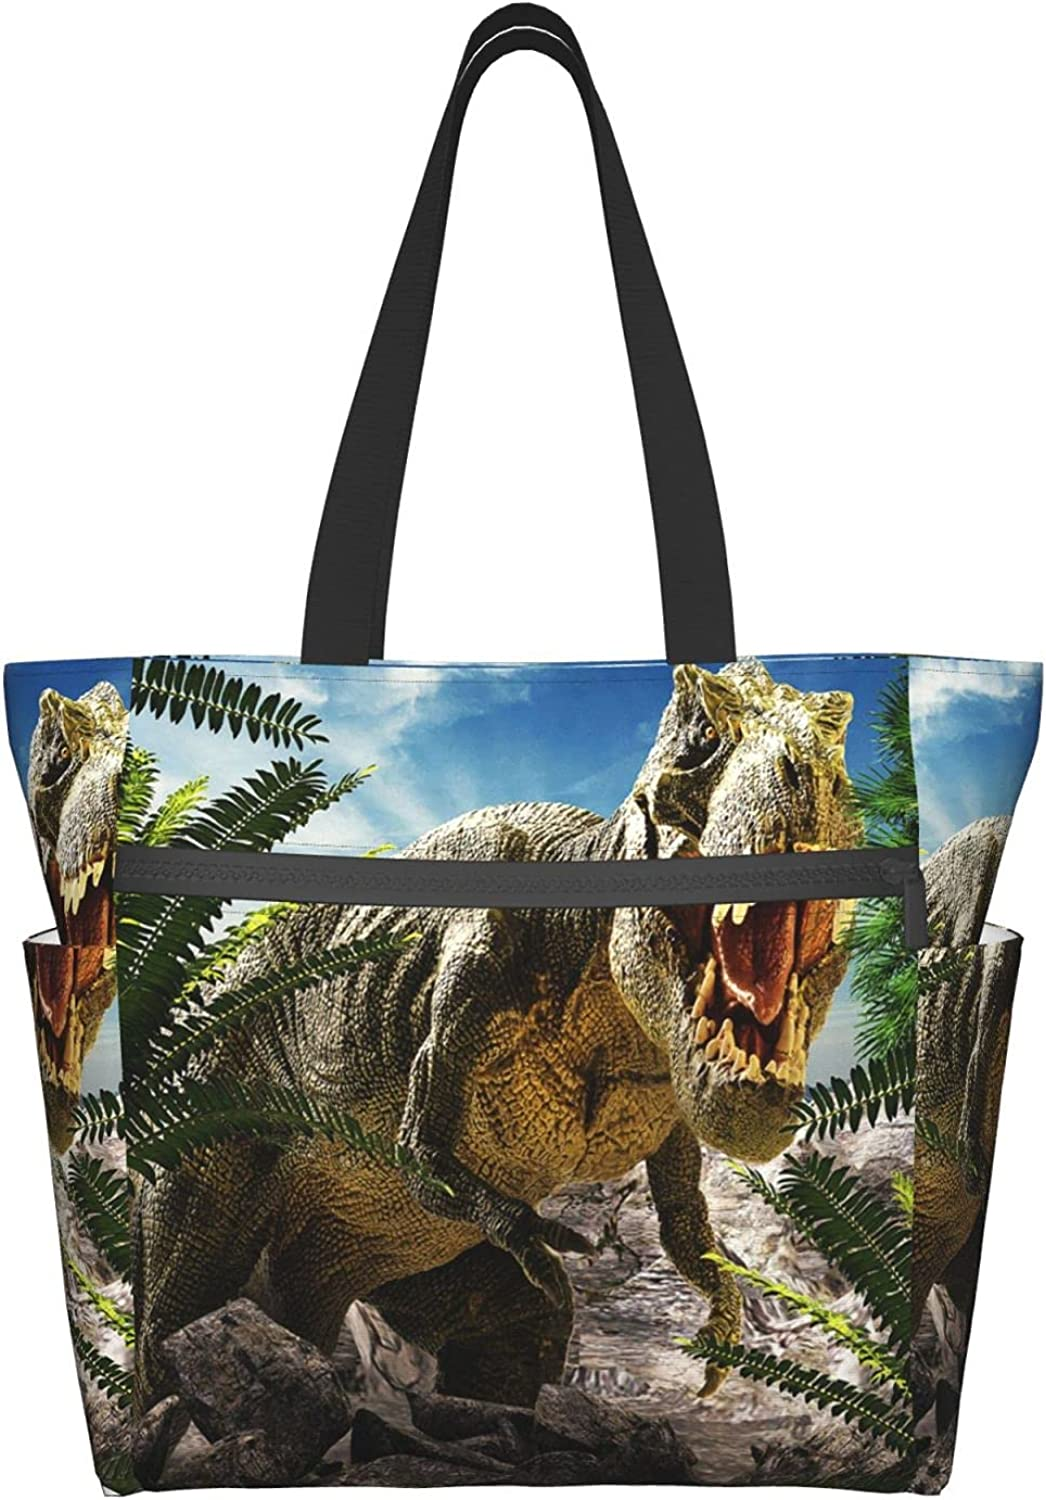 Elegant Tote Travel Bag For Women 3D 67% OFF of fixed price Dinosaur Shoulder With Poc Many